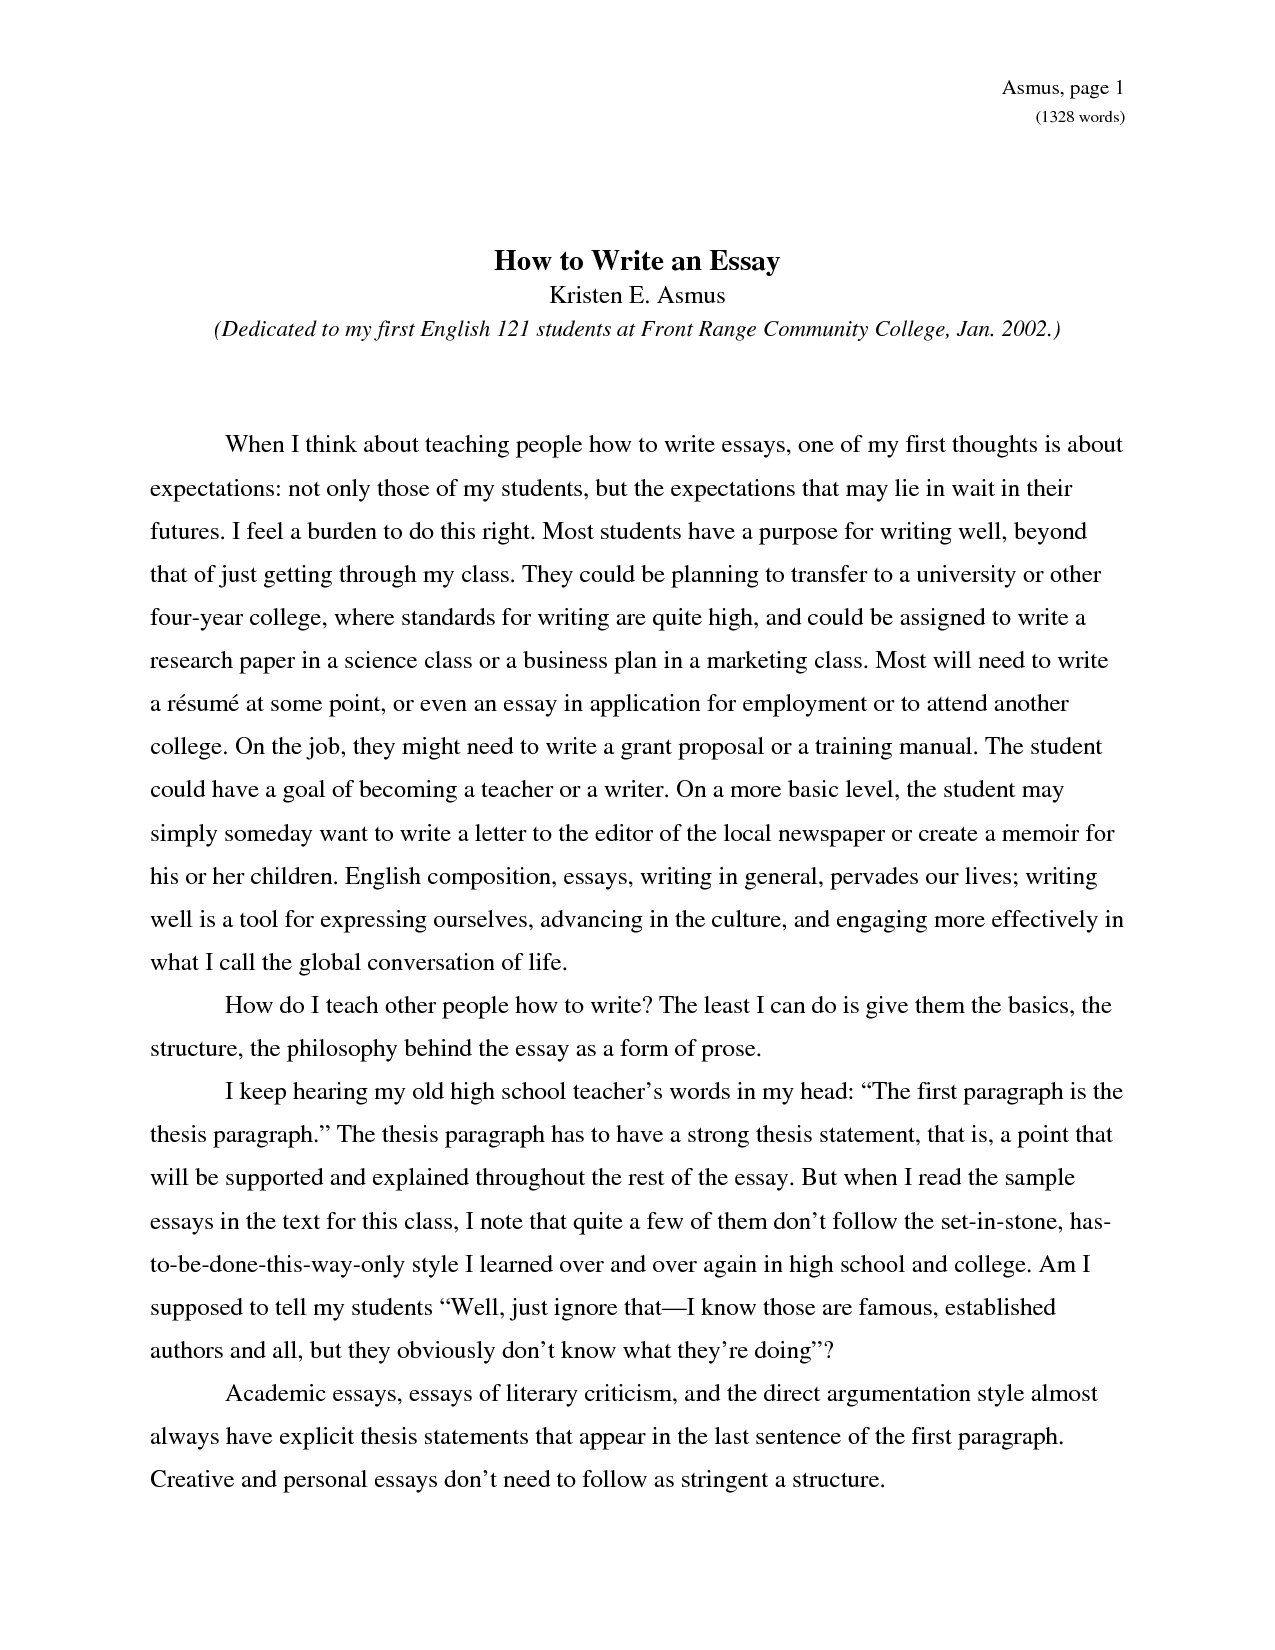 My family essay for college students